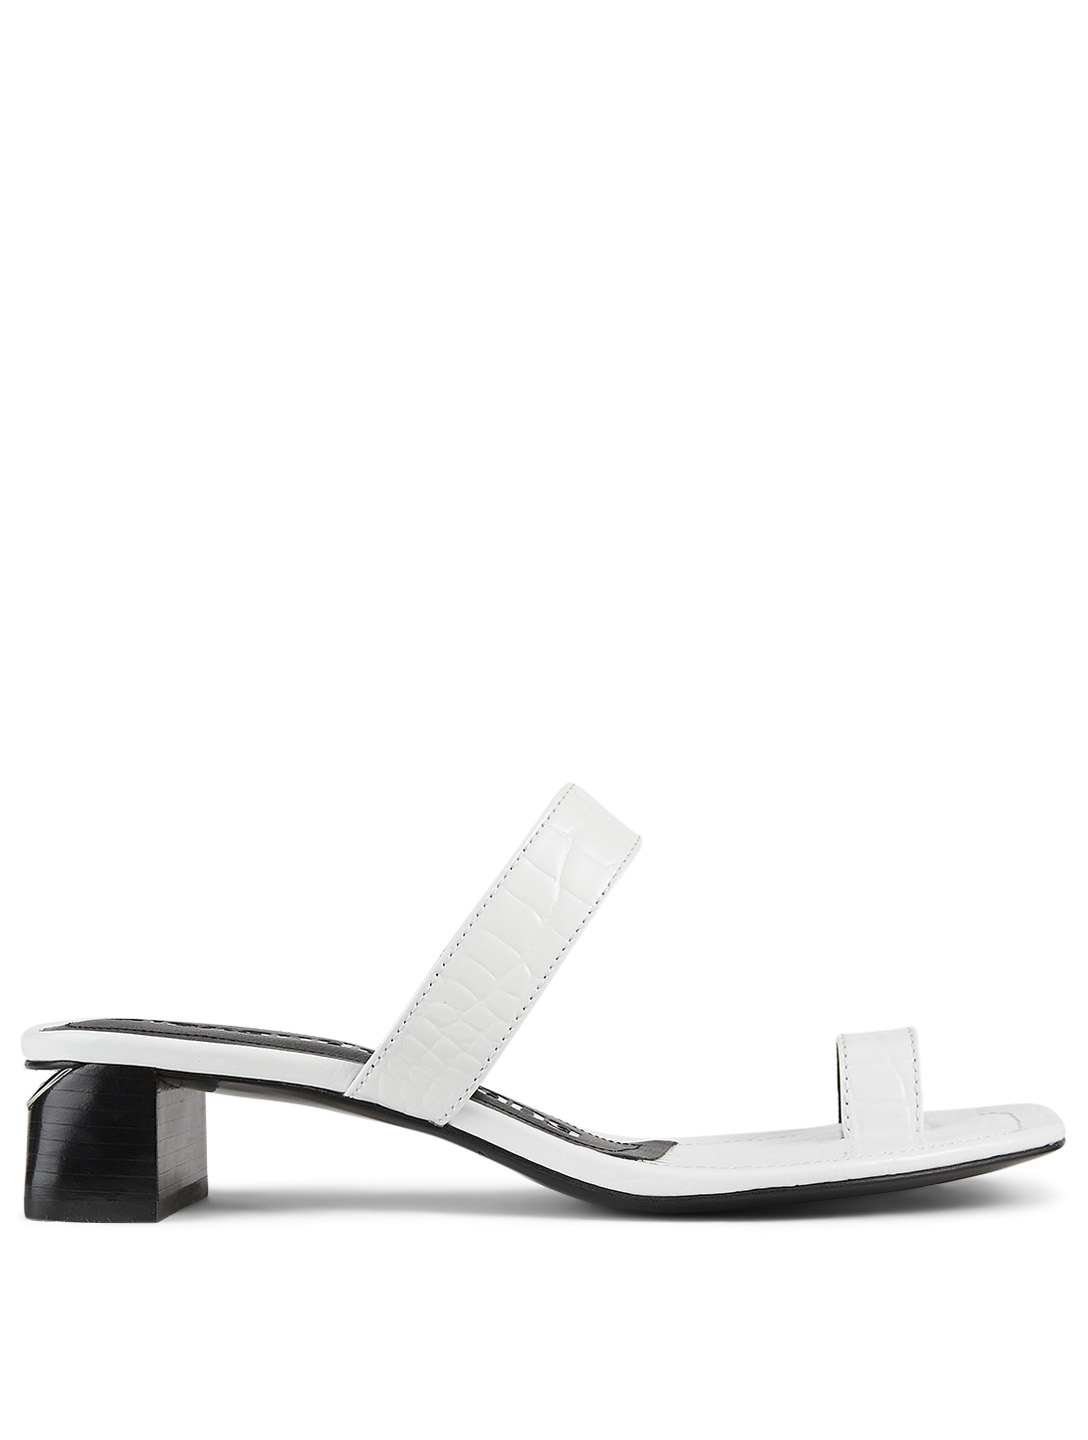 ALEXANDER WANG Ellis Croc-Embossed Leather Heeled Sandals Women's White